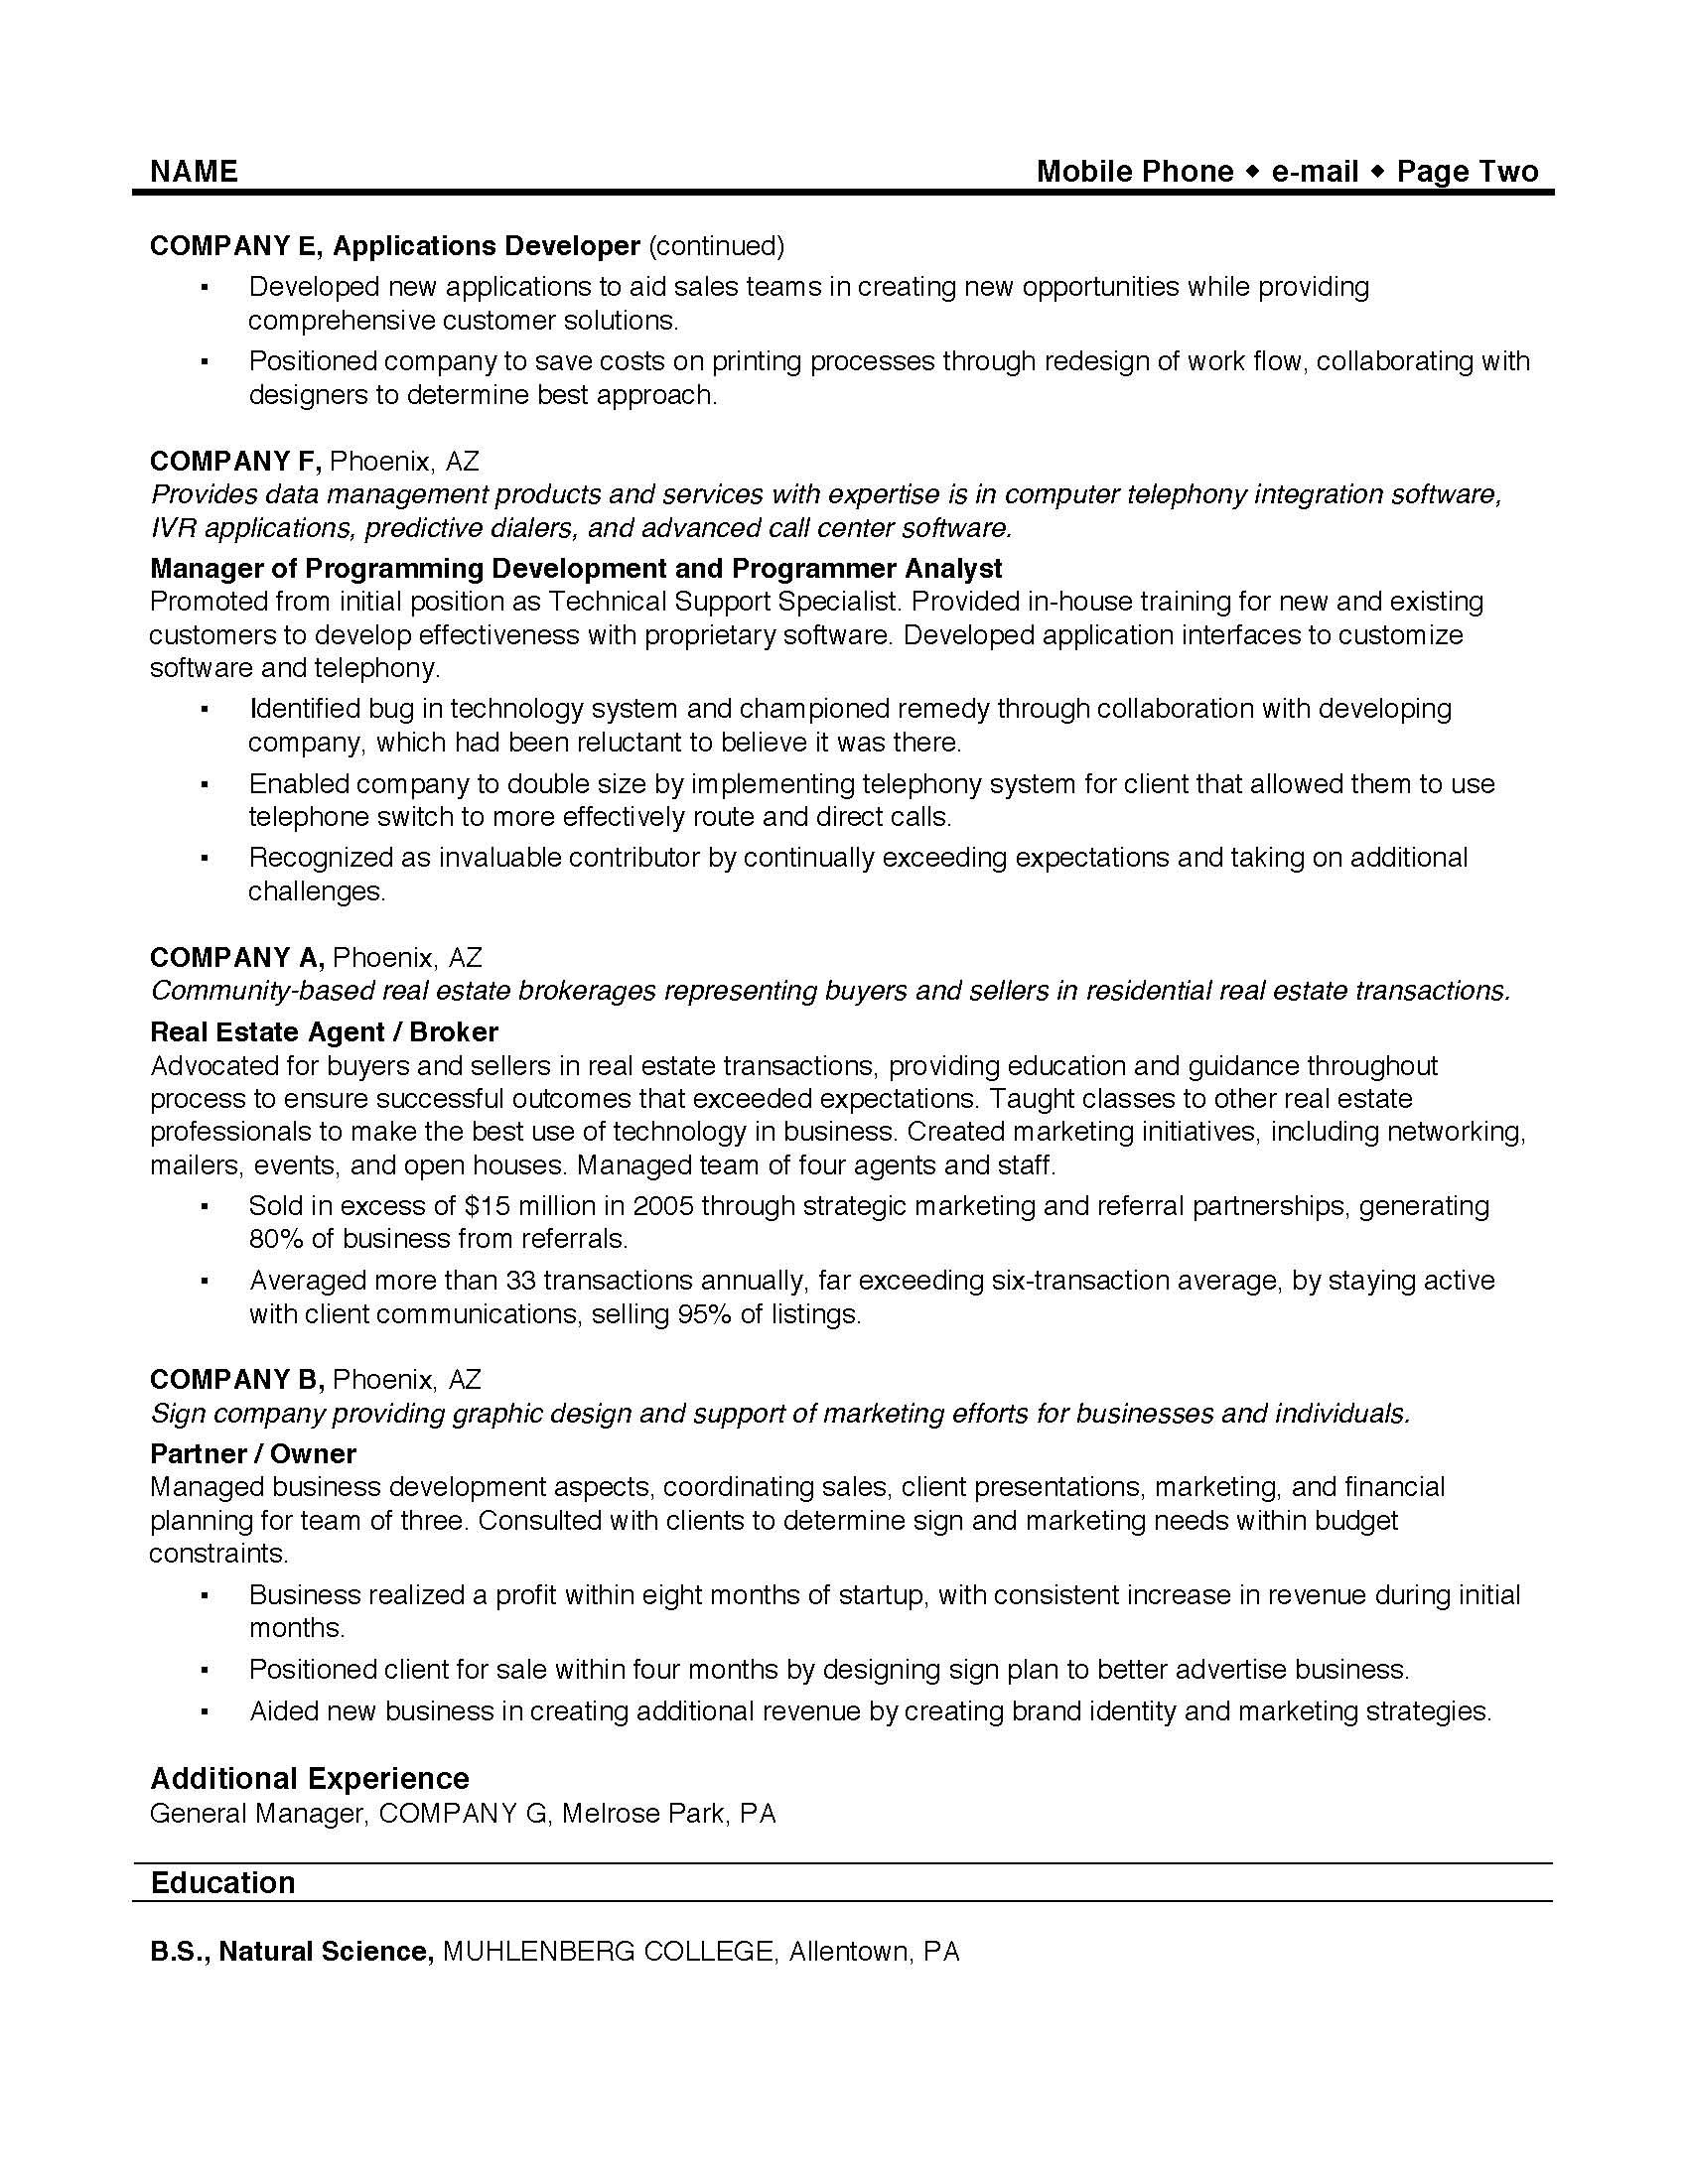 Resume College Graduate Pics Photos Sample College Student Resume Examples Samples Resumes